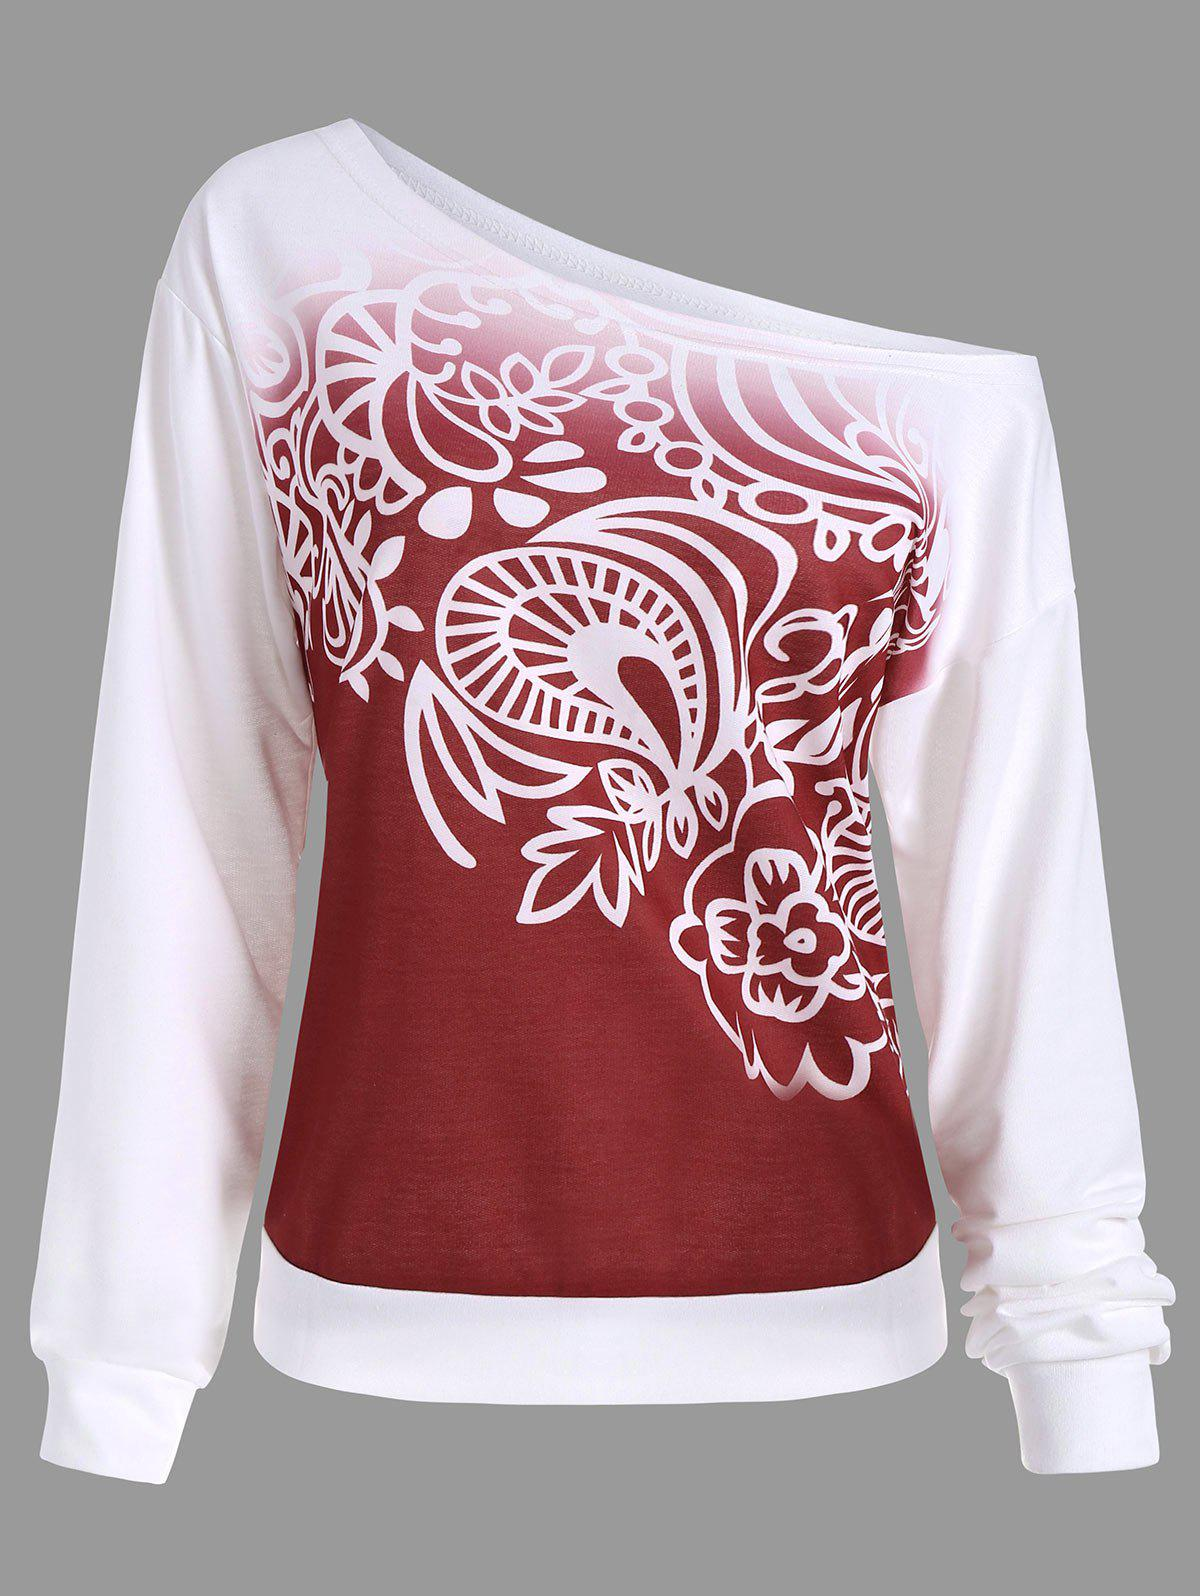 Ombre Printed Long Sleeve Sweatshirt 600g x 0 1g digital balance scale led precision weight